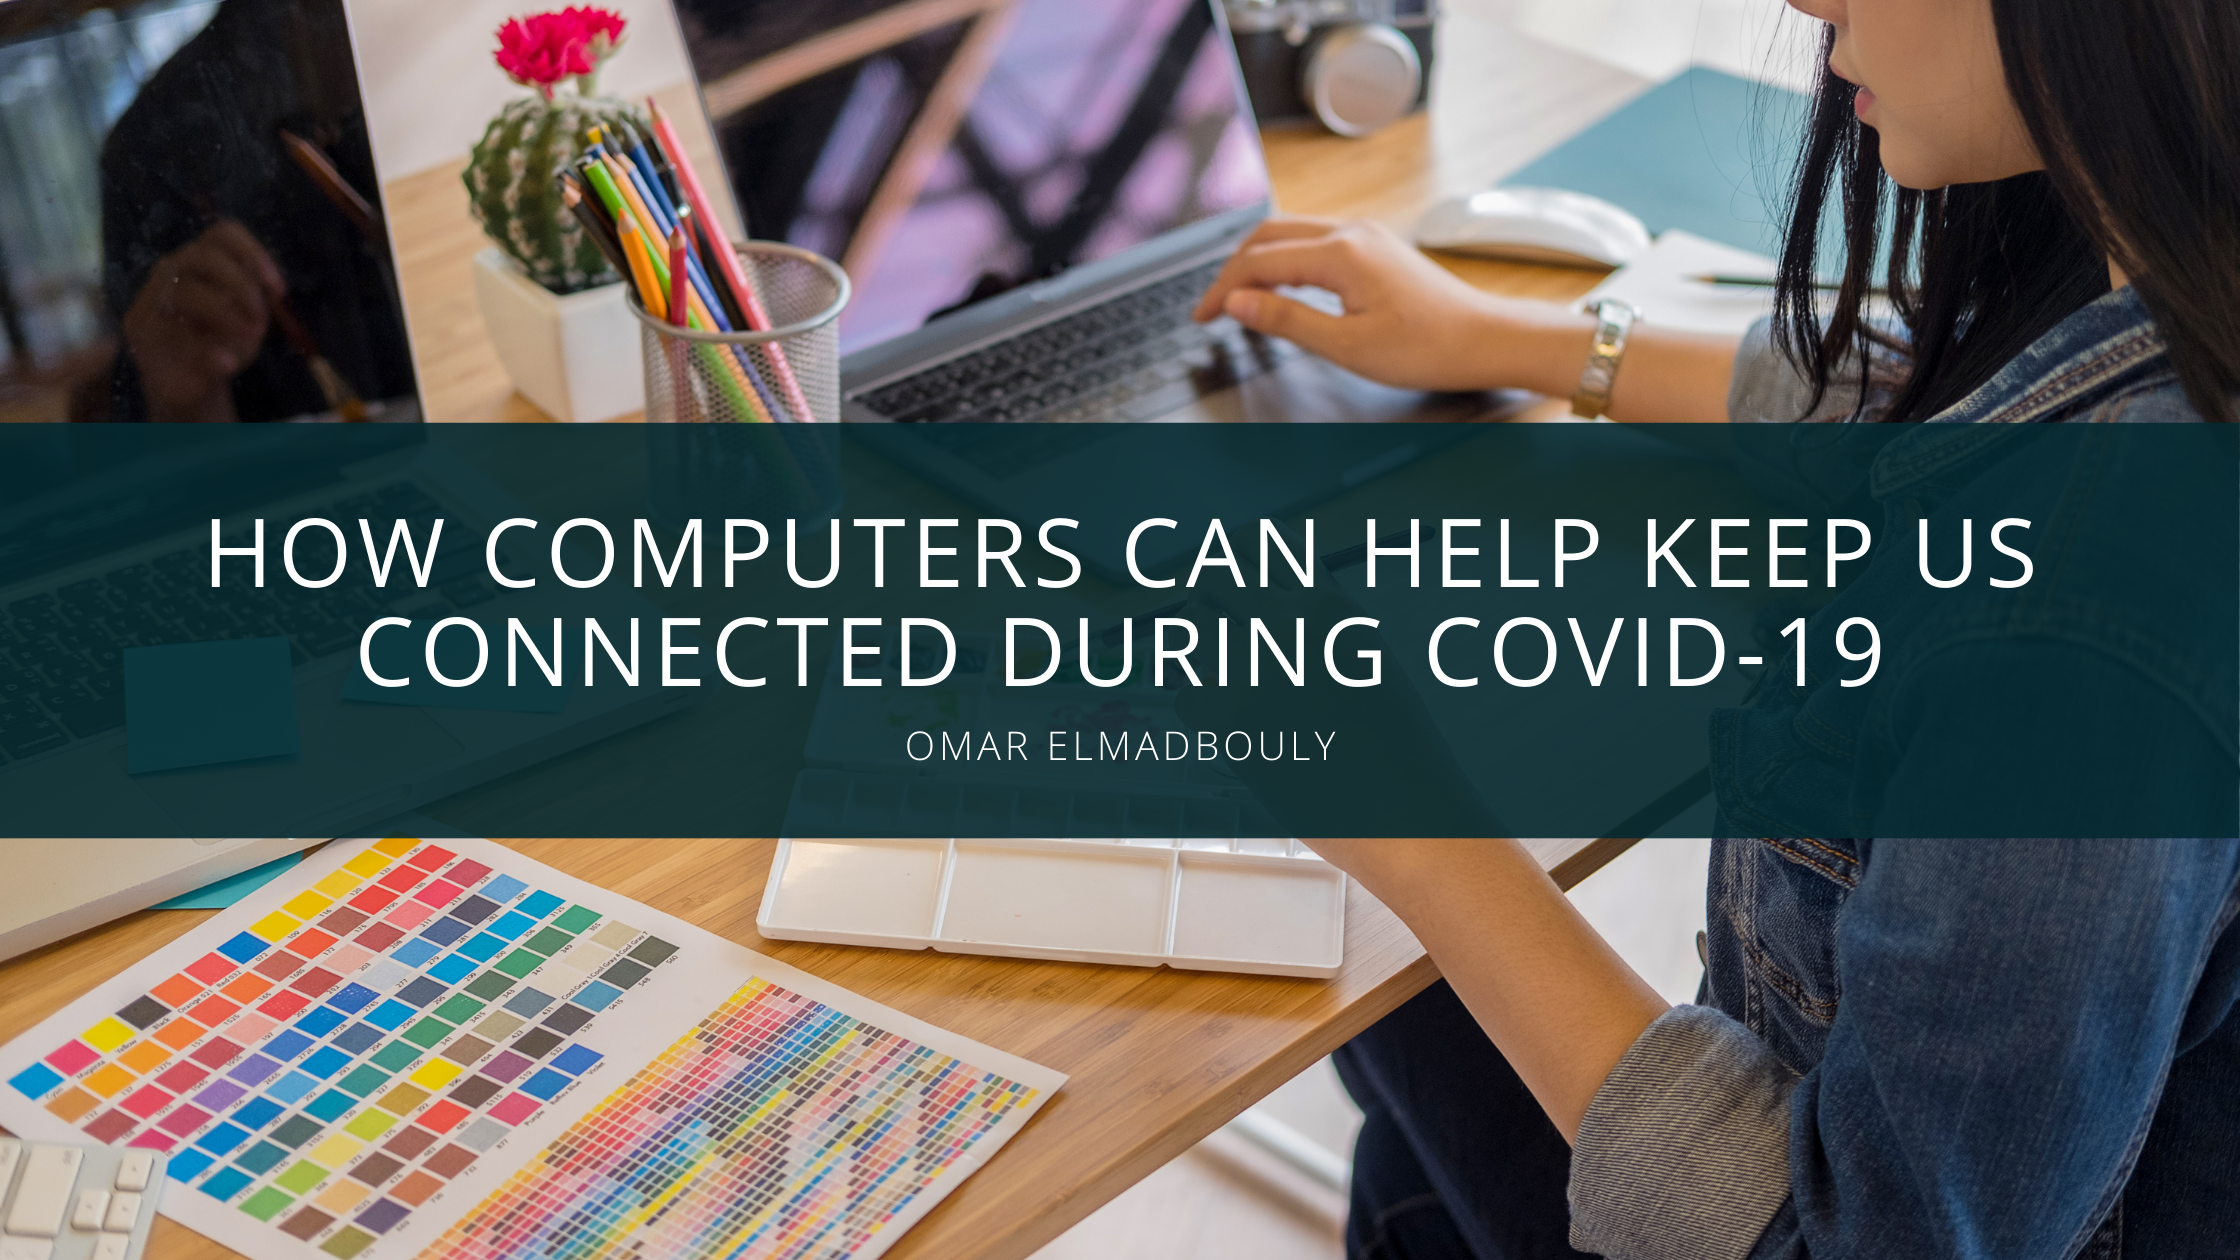 Omar Elmadbouly Examines How Computers Can Help Keep Us Connected During Covid-19